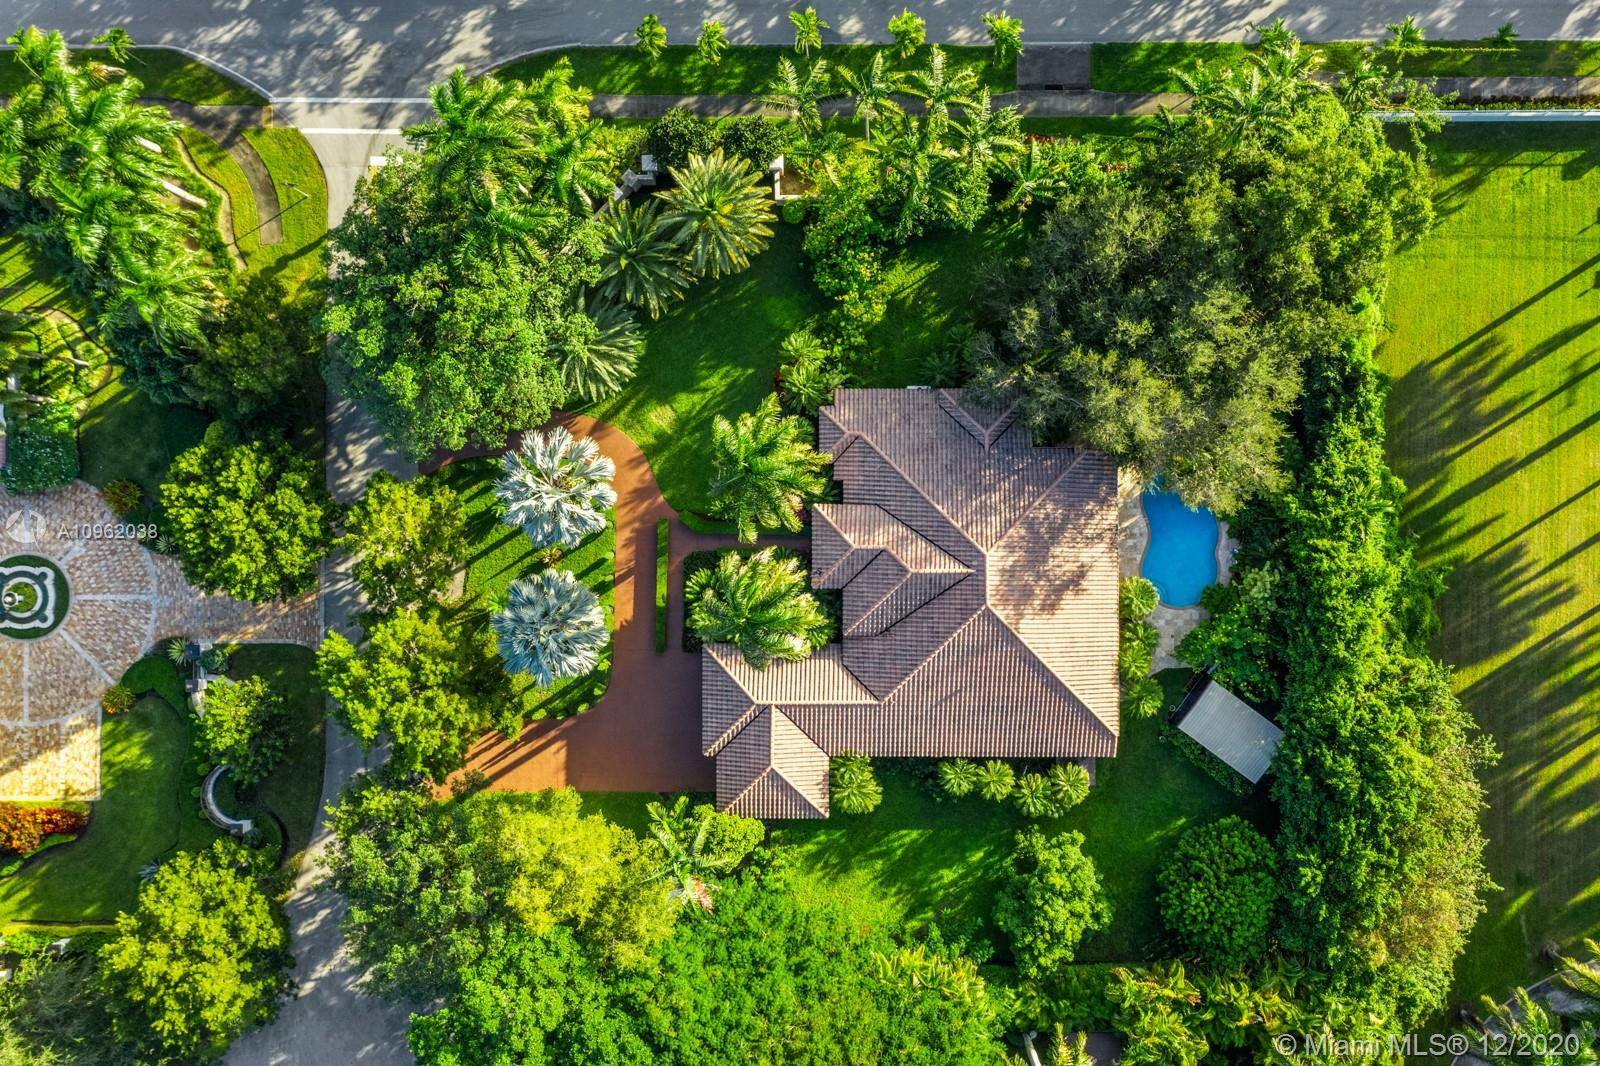 Welcome to this spectacular home that is located on a 33,192 sqft lot. It is surrounded by beautiful tropical landscaping providing the property with ultimate privacy. There are 5 bedrooms and 4 bathrooms with an oversized master suite that is complete with a sitting area, dual walk in closets and vaulted 12' high ceilings. The entire property has an amazing, well thought out layout that has lots of natural light in every room. The laundry room is very spacious with plenty of storage and there is a full size outdoor kitchen that overlooks the pool. The property is located in Sunset Heights which is close to amazing schools, shopping and dining. It truly is the perfect next home for your family.